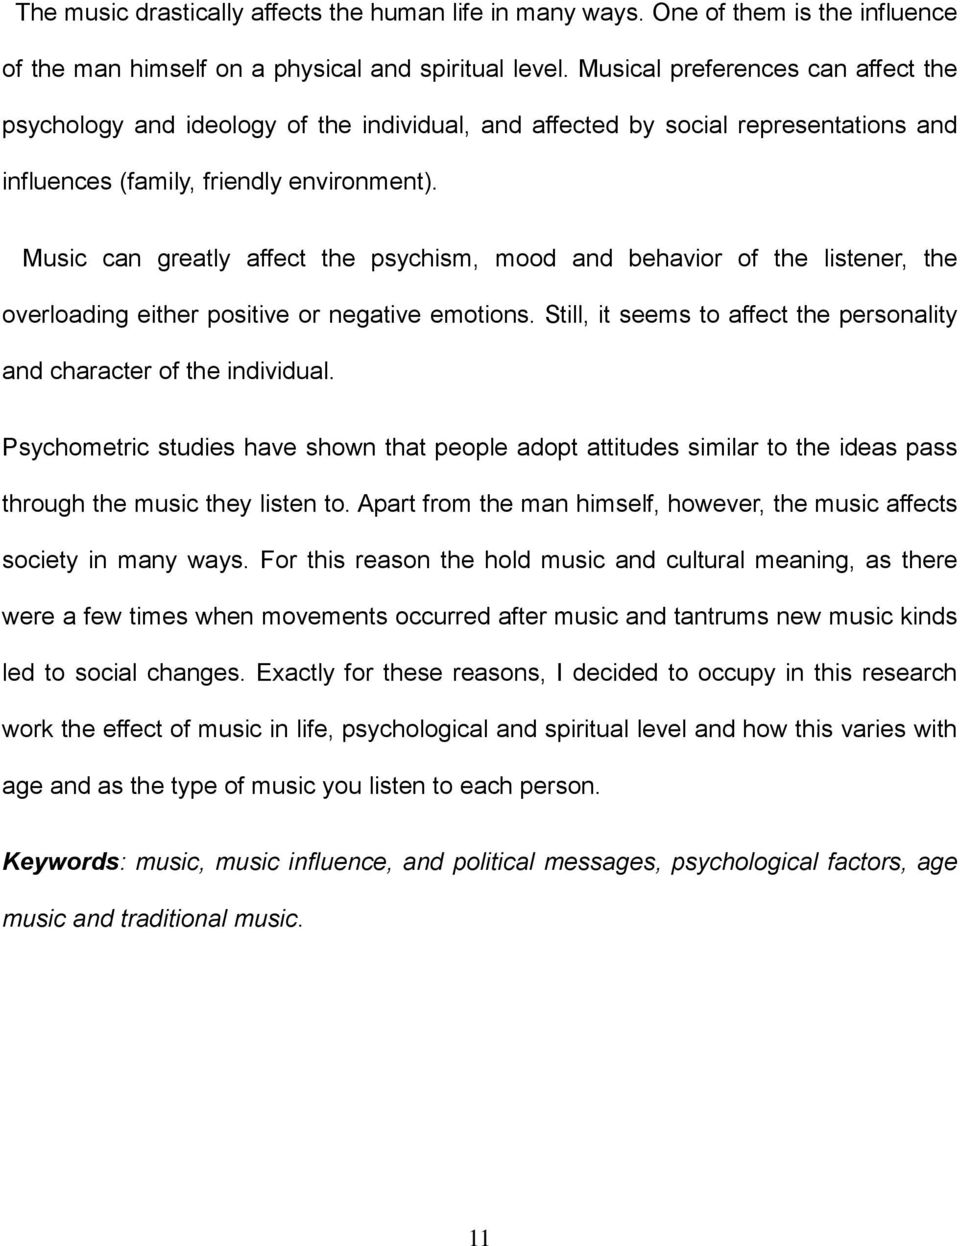 Music can greatly affect the psychism, mood and behavior of the listener, the overloading either positive or negative emotions.